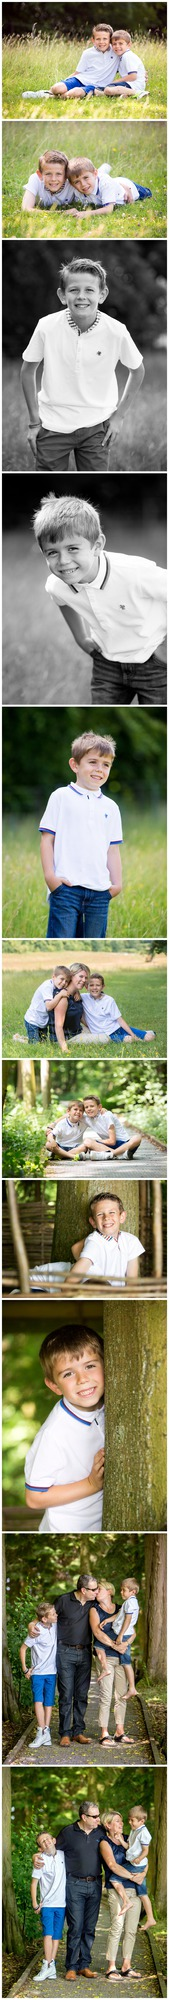 Family photo session in Hemel Hempstead